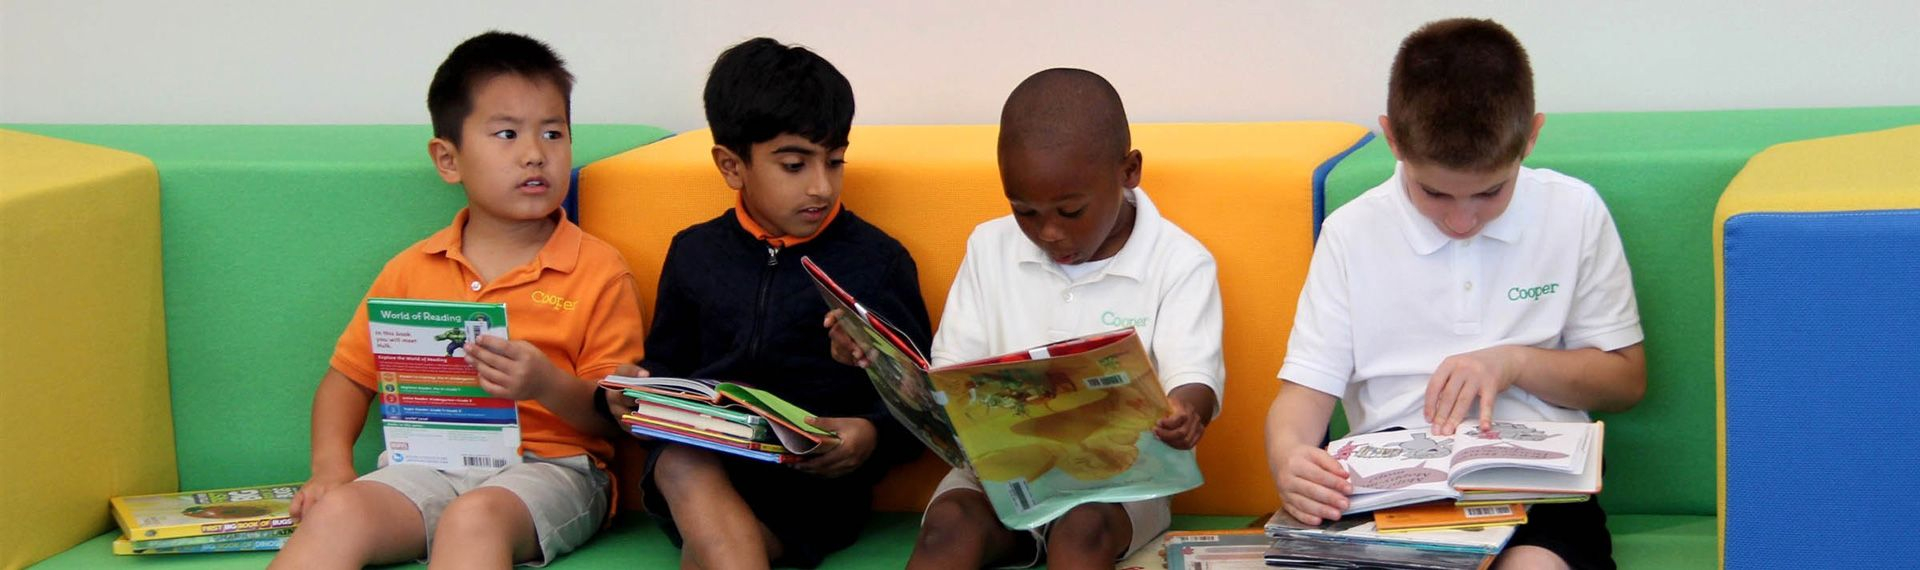 Lower School students read at the library.